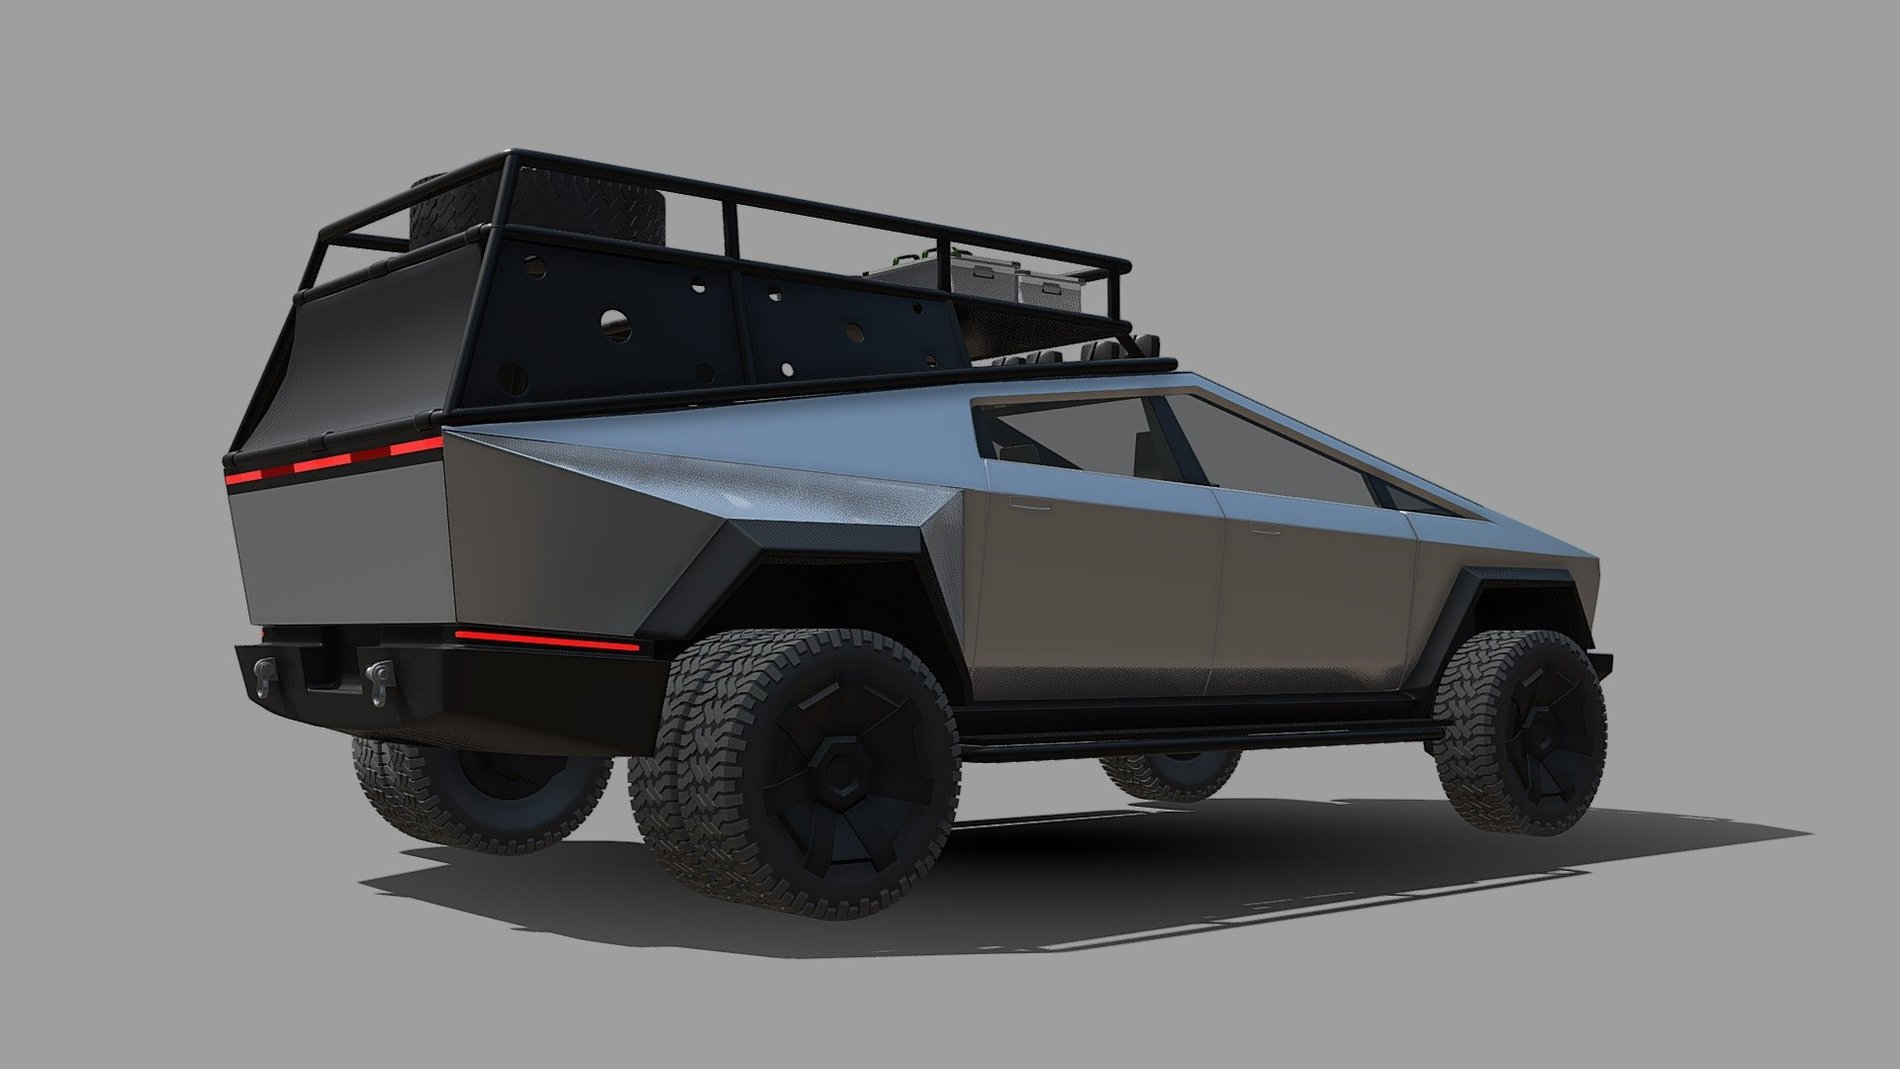 Roof_Bed_Cargo_Rack_Tesla_Cybertruck_OffRoad_005.jpg